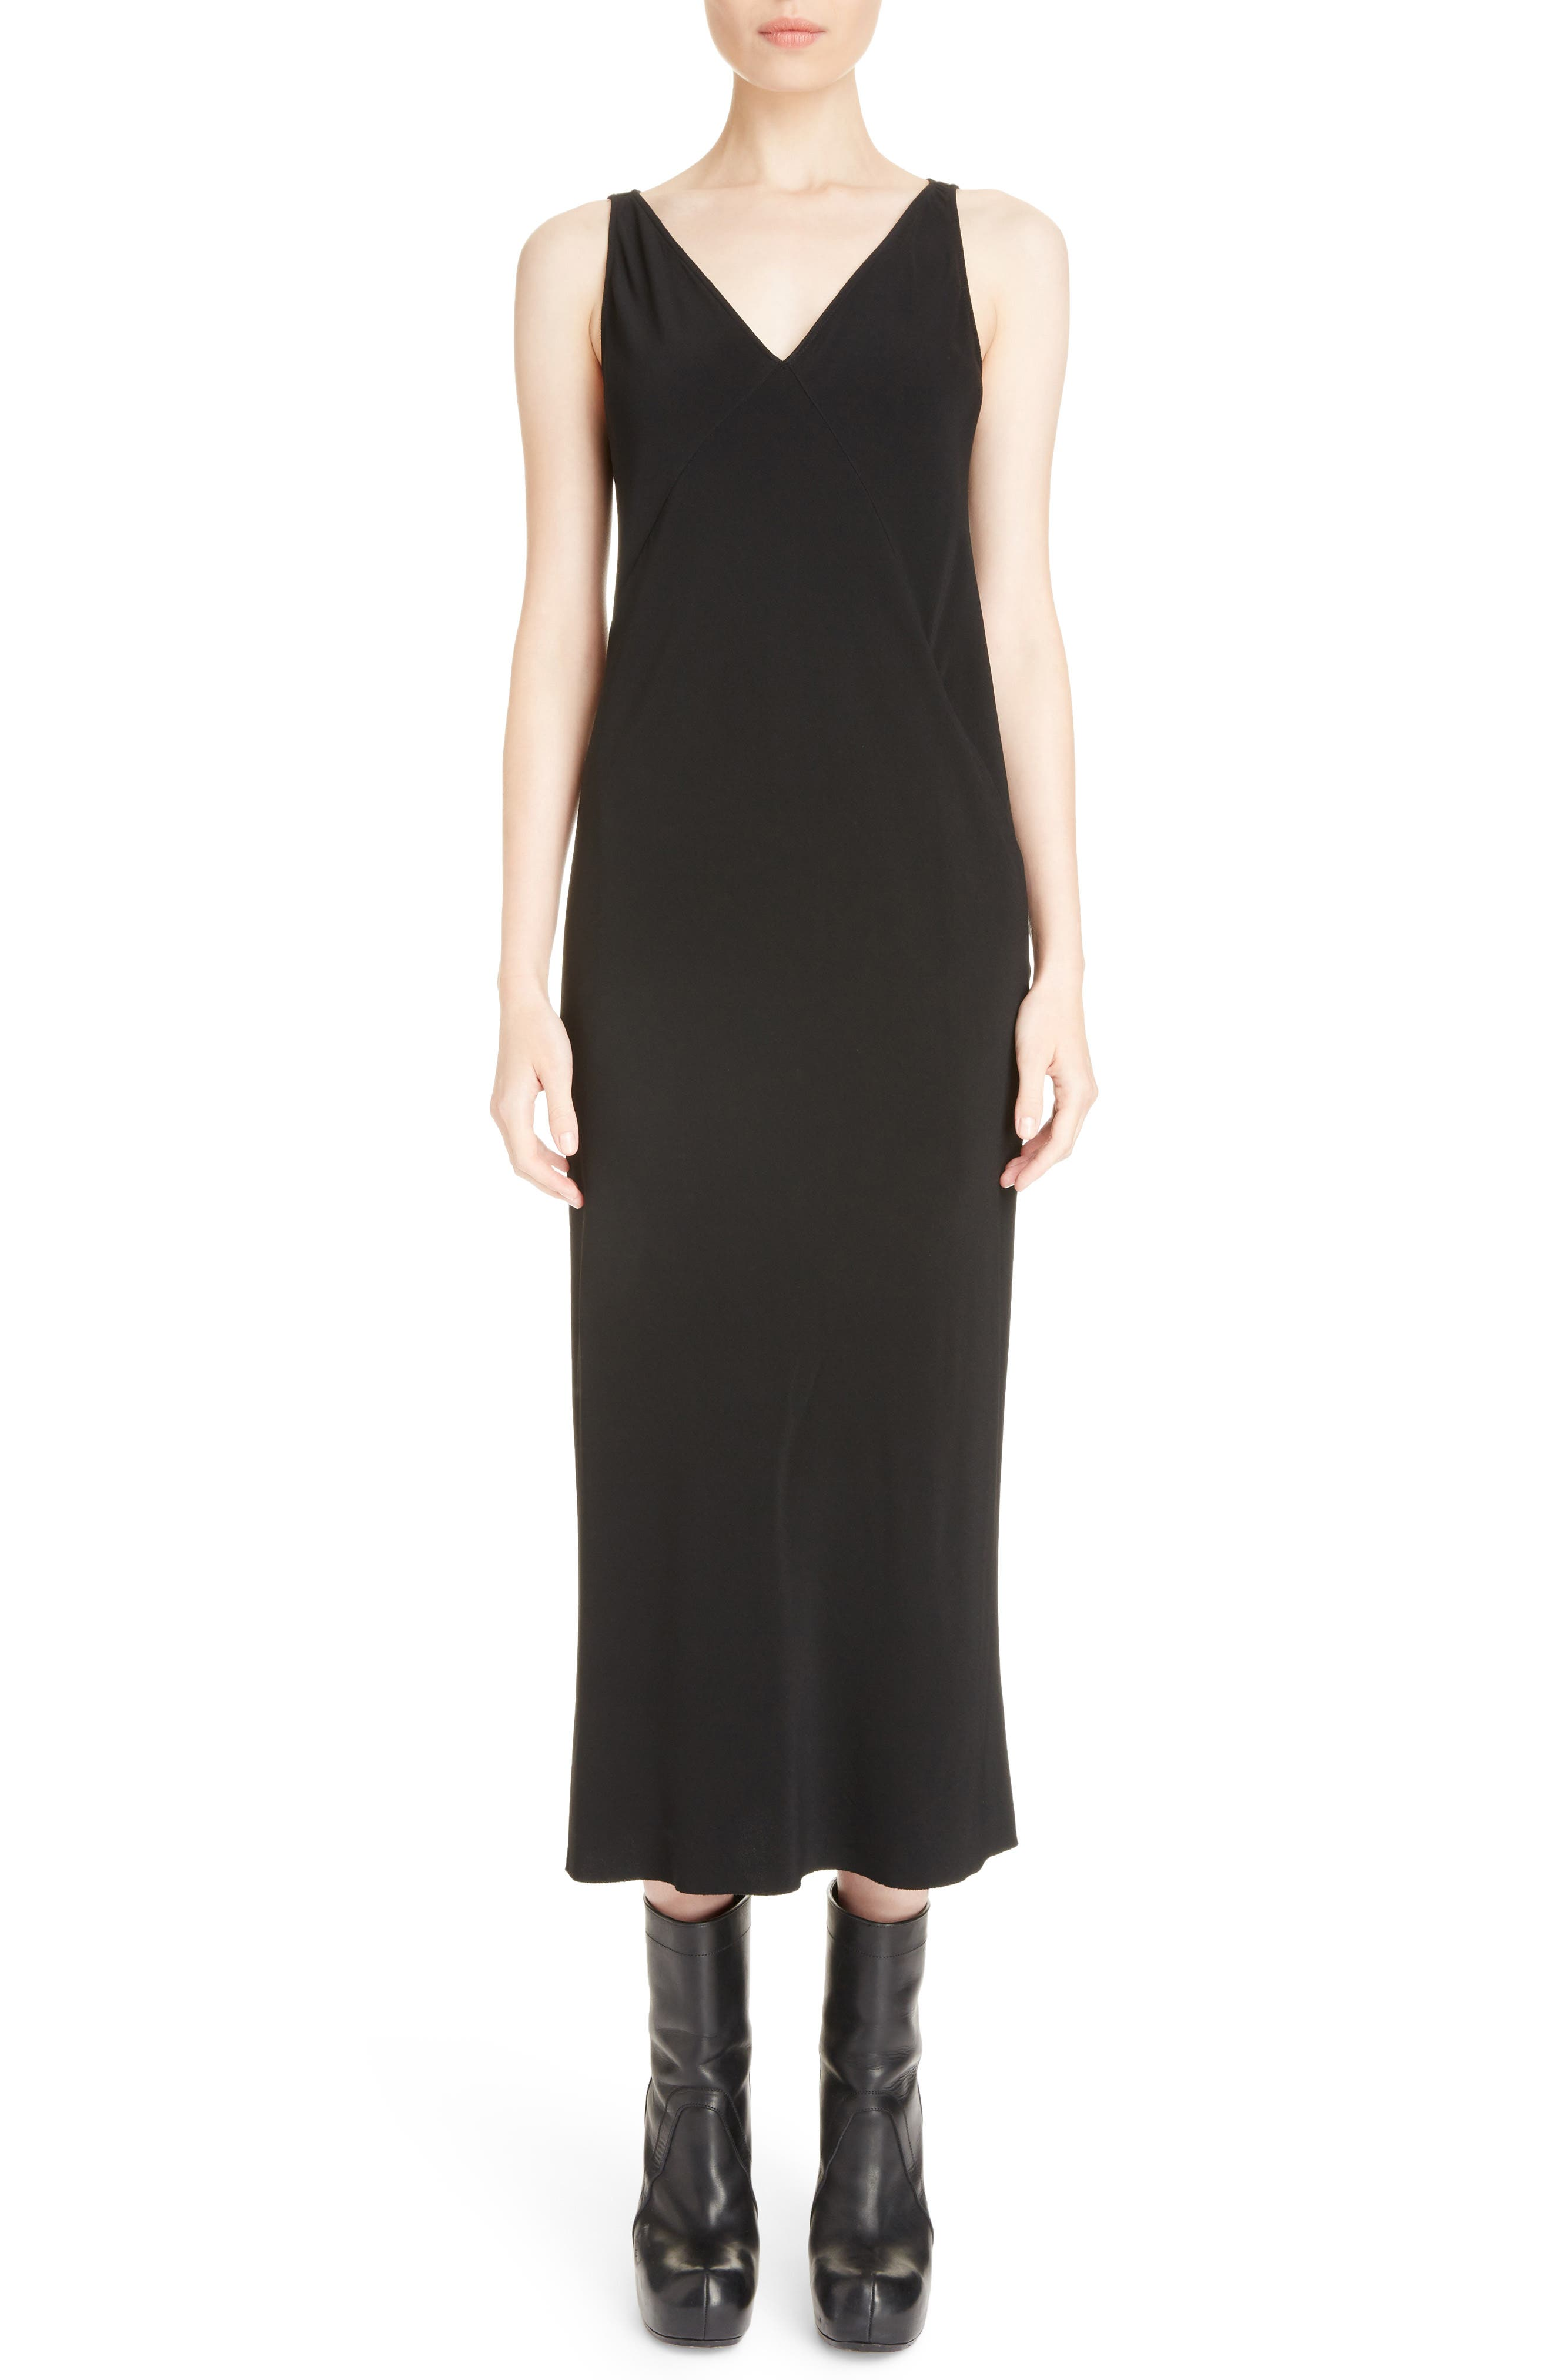 Alternate Image 1 Selected - Rick Owens Cady Midi Dress